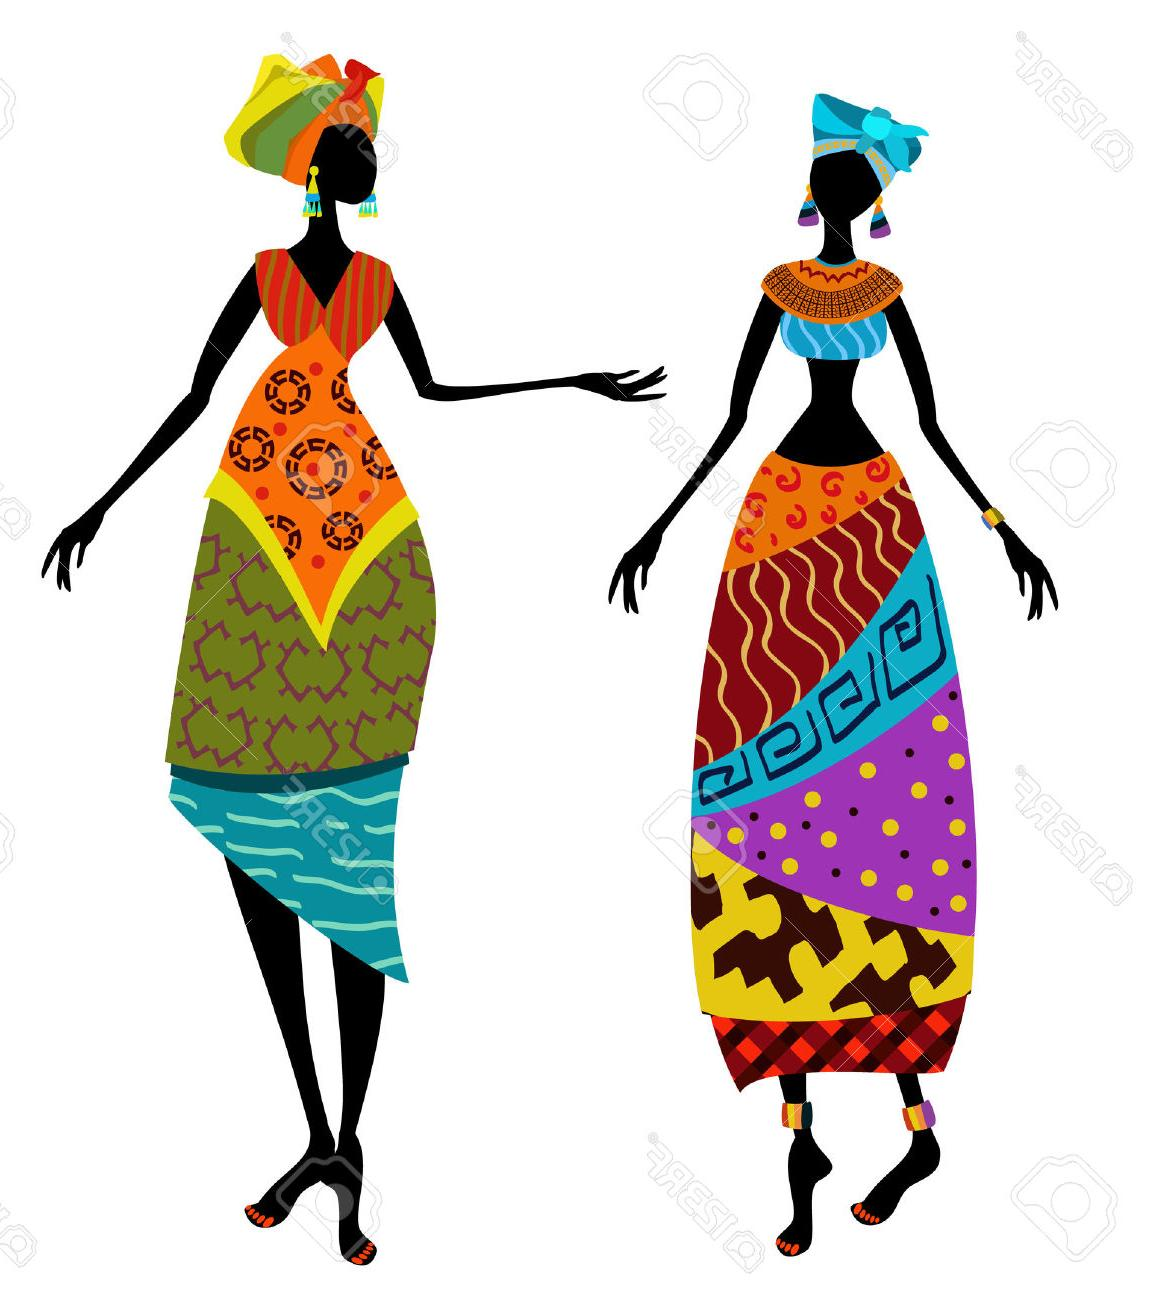 African clipart traditional. Best hd woman design